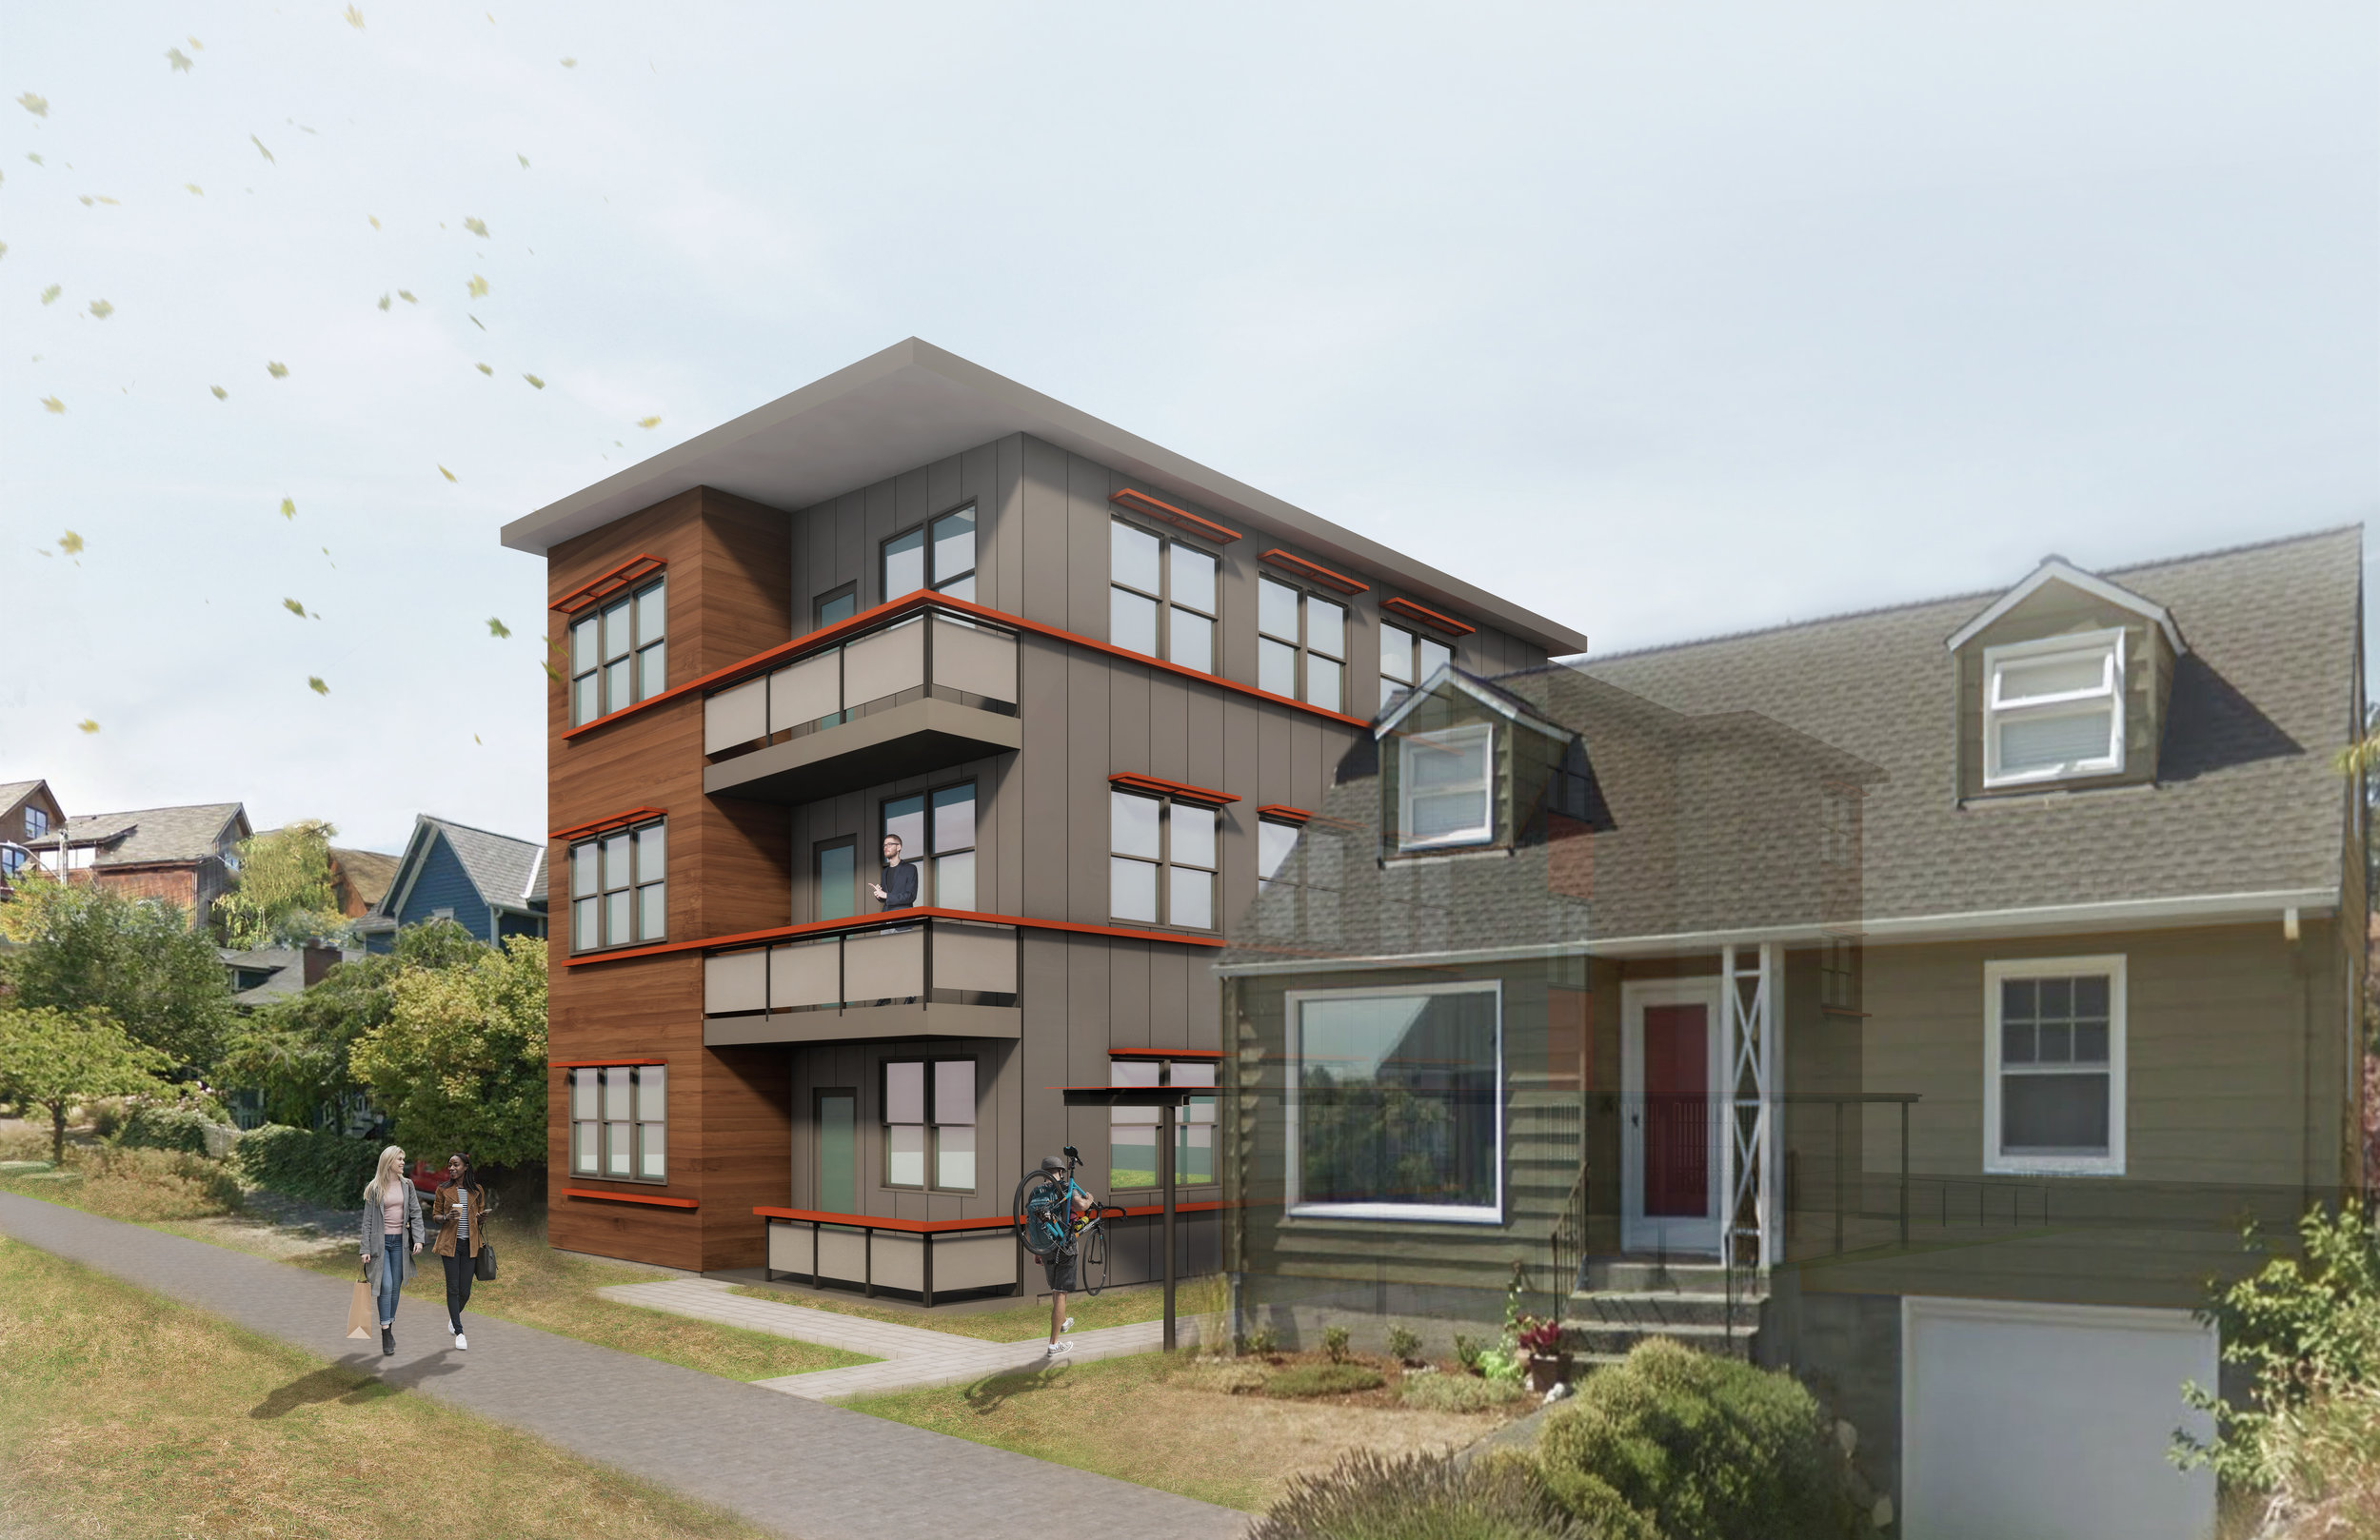 5-unit, 3-story apartment building - coming soon!